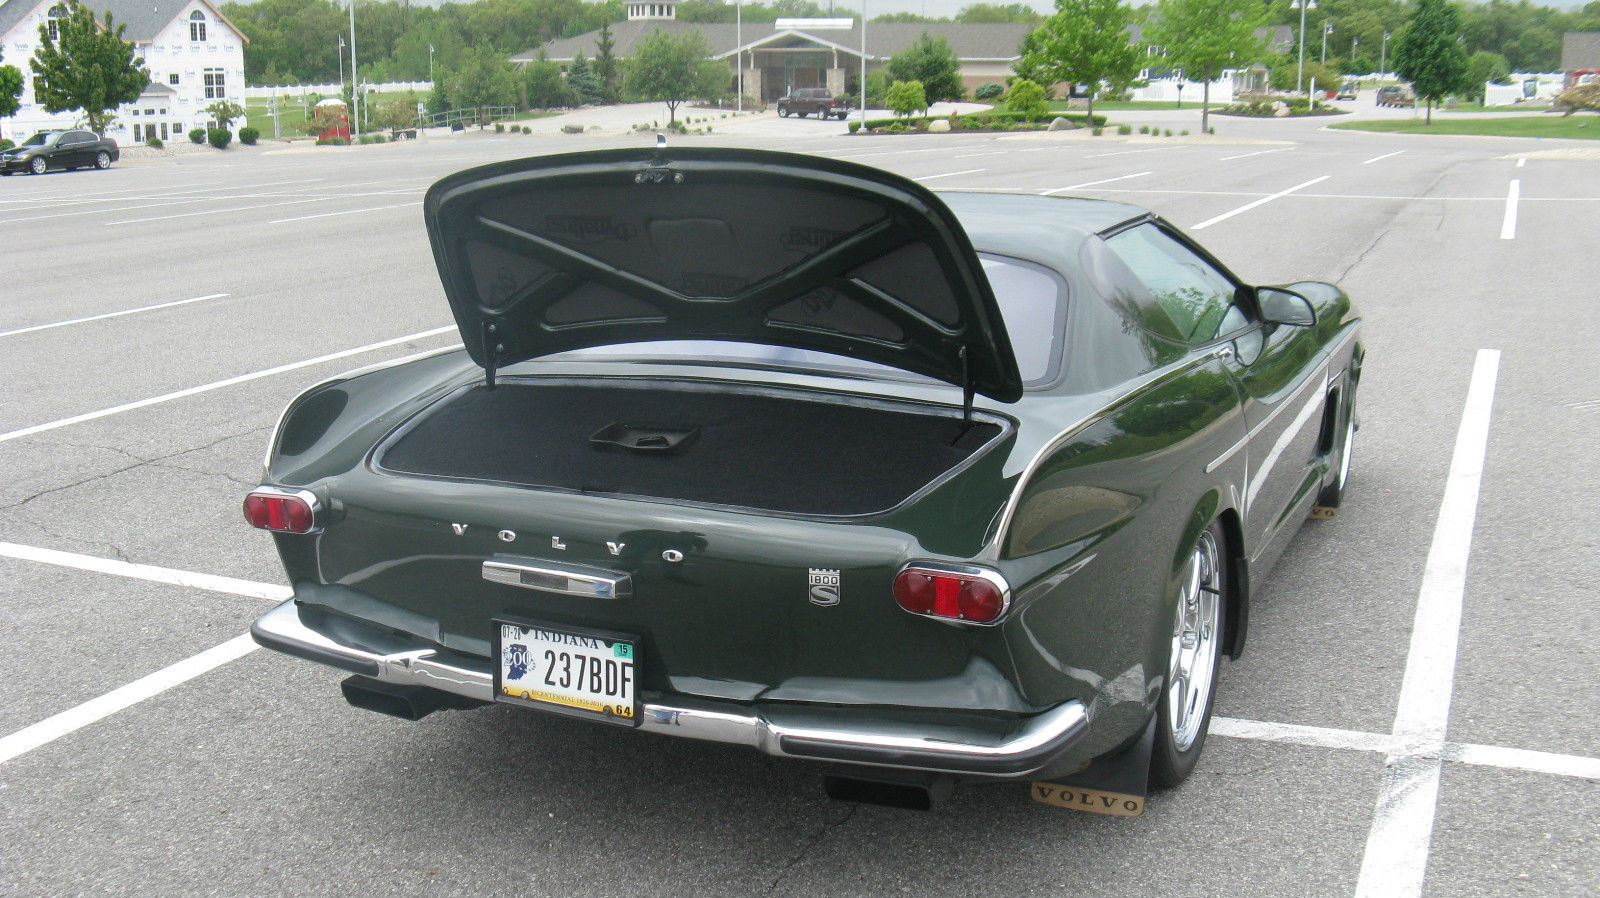 Volvette Is A Corvette With A Volvo P Body